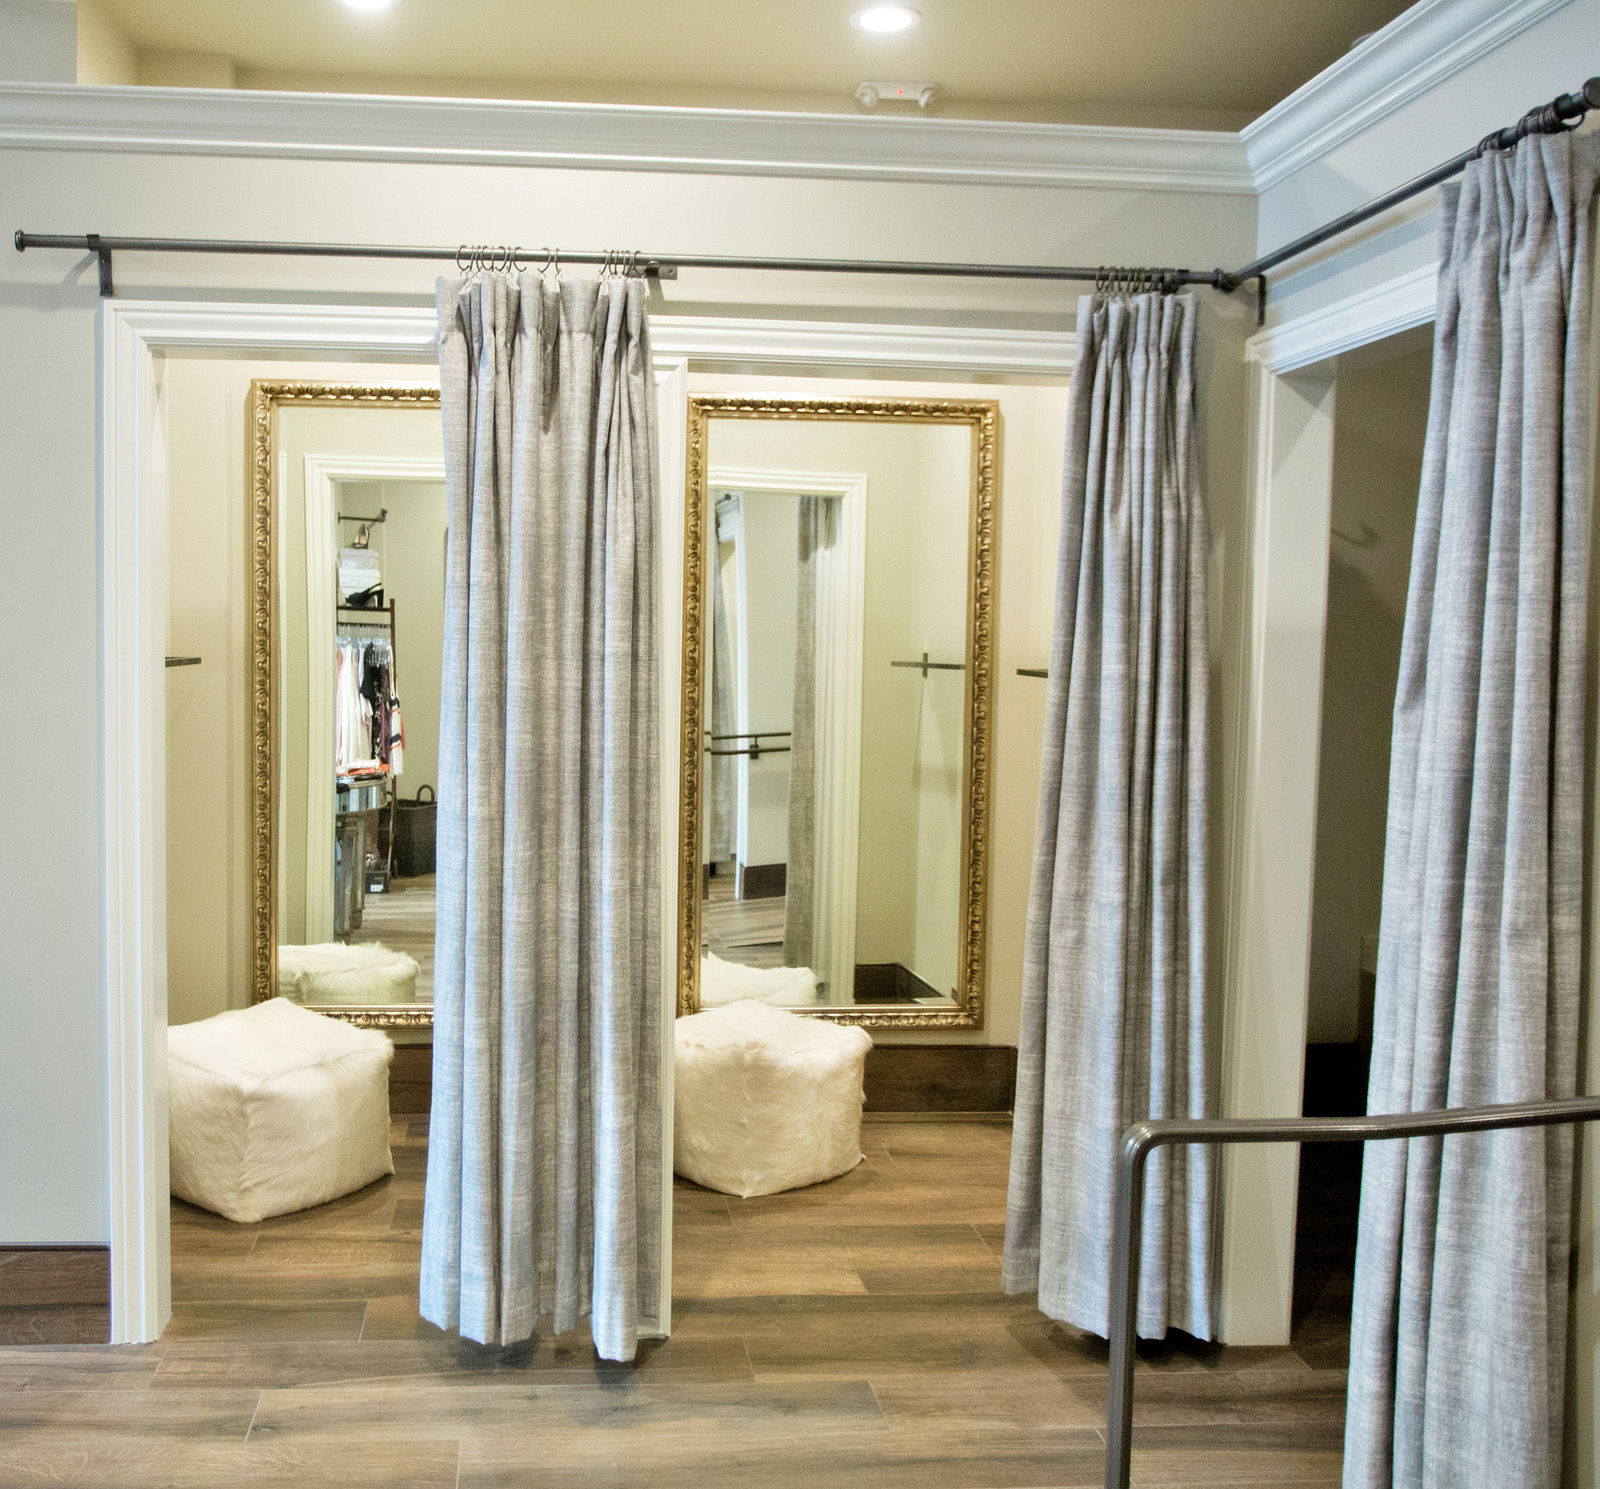 Fitting rooms at BellaJames Women's Boutique